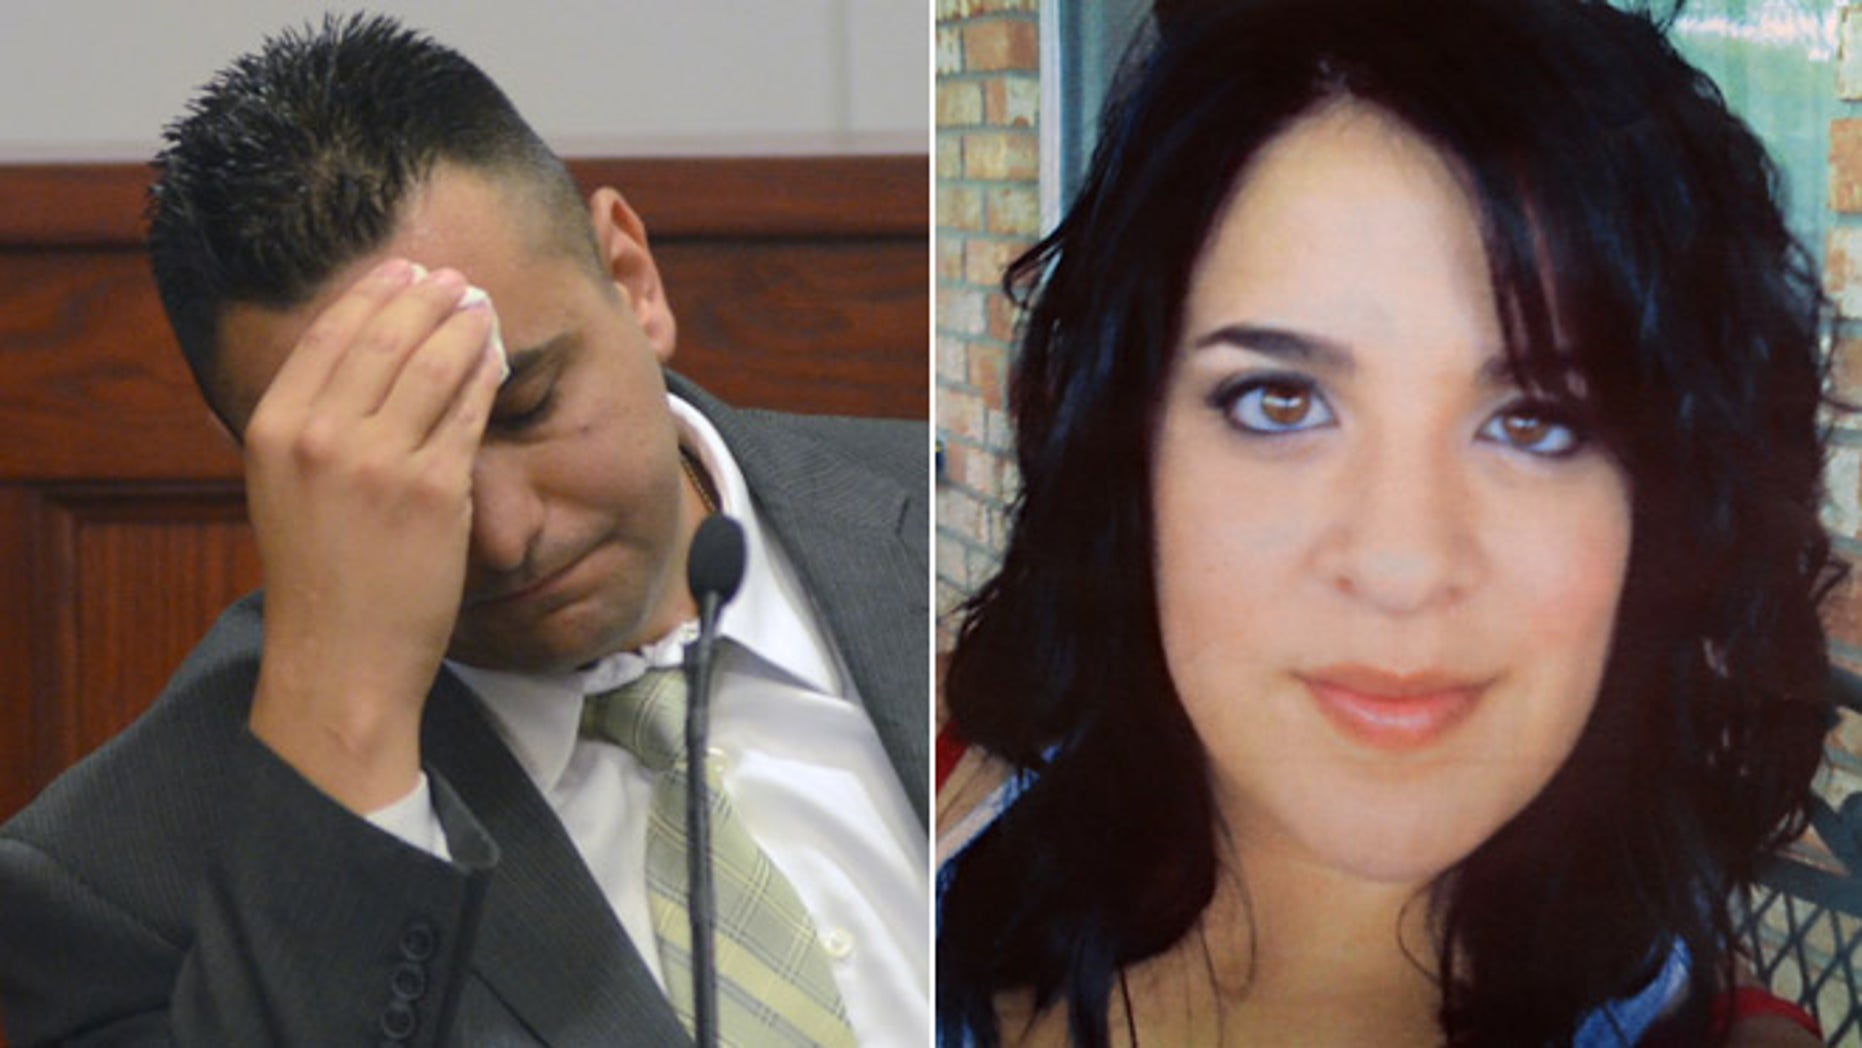 Former Albuquerque police officer Levi Chavez, left, takes the stand in his own defense on in Albuquerque, N.M. Levi, 32, accused of killing his wife and making her death look like a suicide.